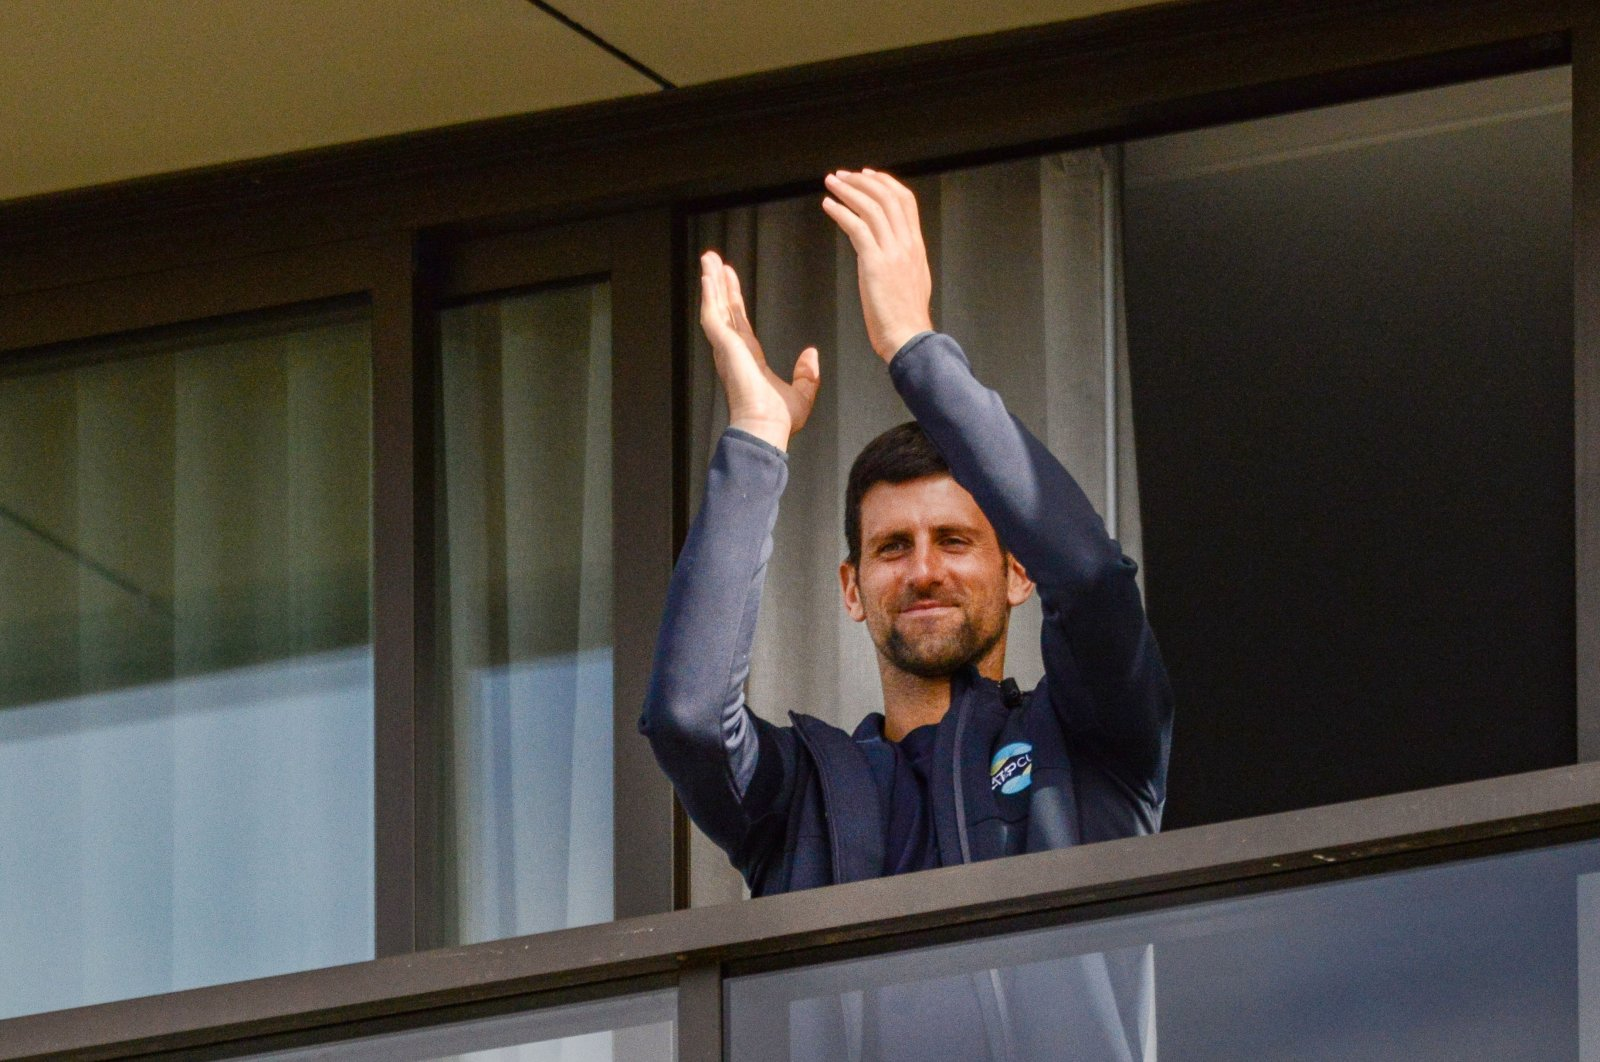 Men's world No. 1 tennis player Novak Djokovic of Serbia gestures from his hotel balcony on the last day of his mandatory two-week quarantine in Adelaide, Australia, Jan. 28, 2021. (Photo by Brenton Edwards via AFP)